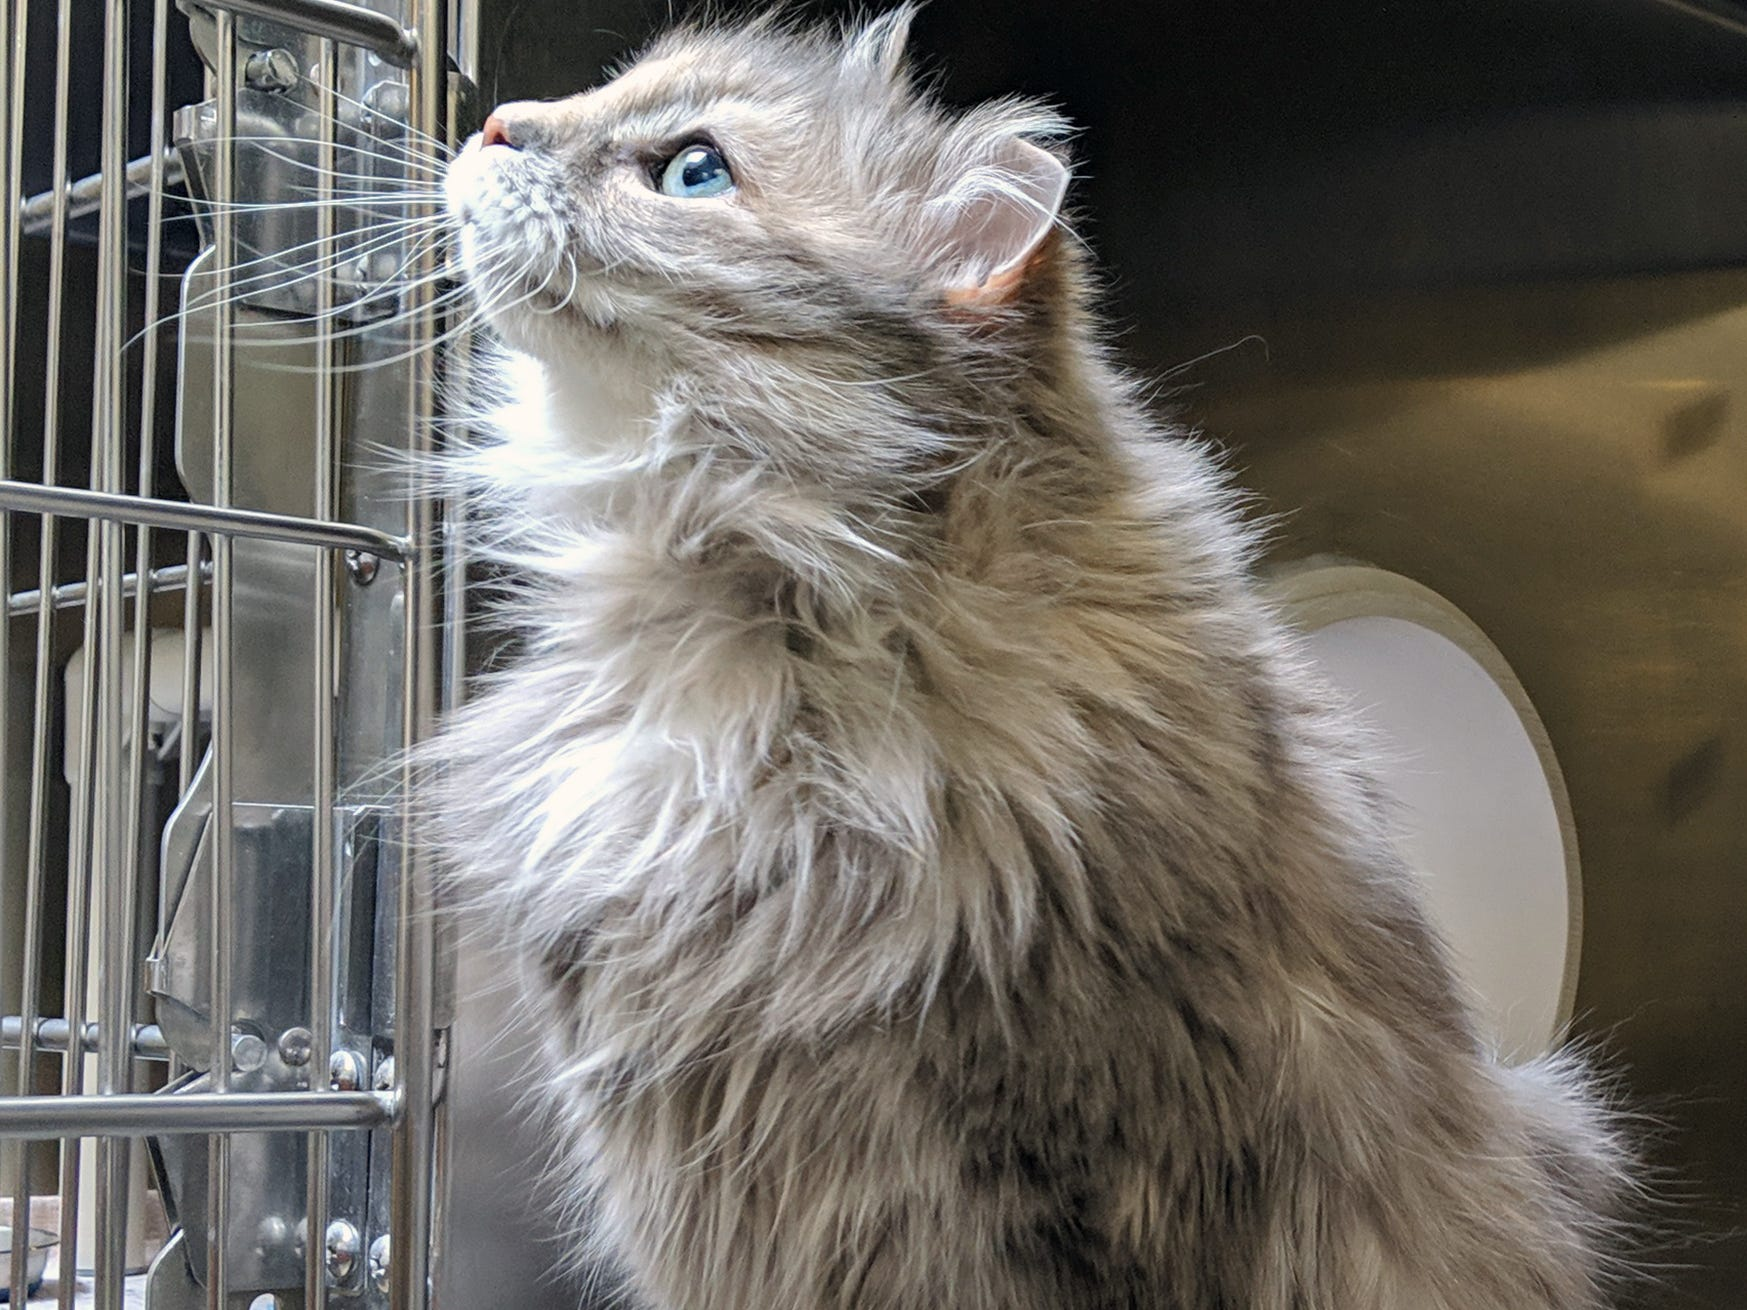 Lemon Chiffon is between 1-5 years old. She is a fuzzy gray calico cat who was found in Hanover on Broadway and is available for adoption at the York County SPCA Tuesday February 26, 2019.